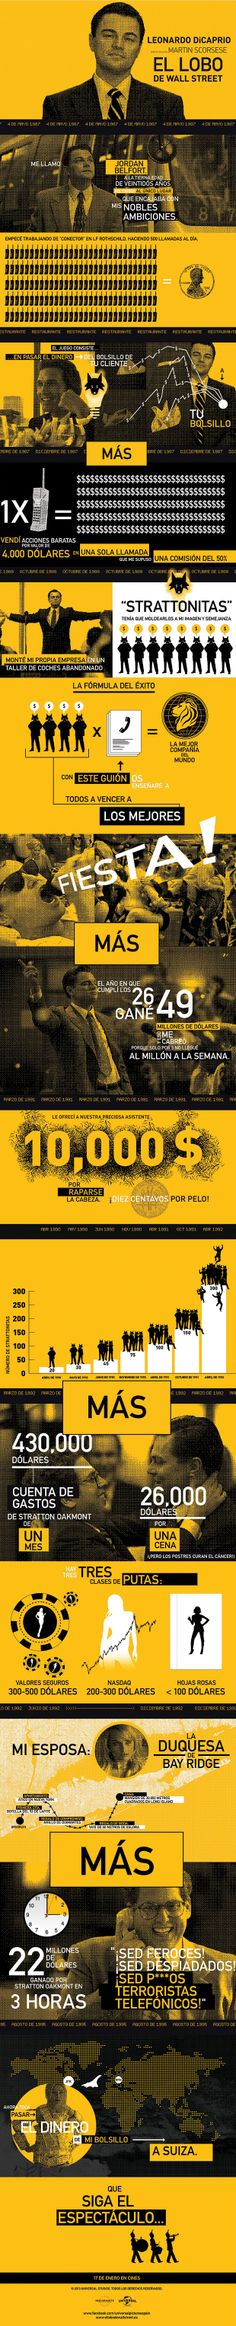 45 Mejores Imágenes De Wolf Of Wall Street Wolf Of Wall Street